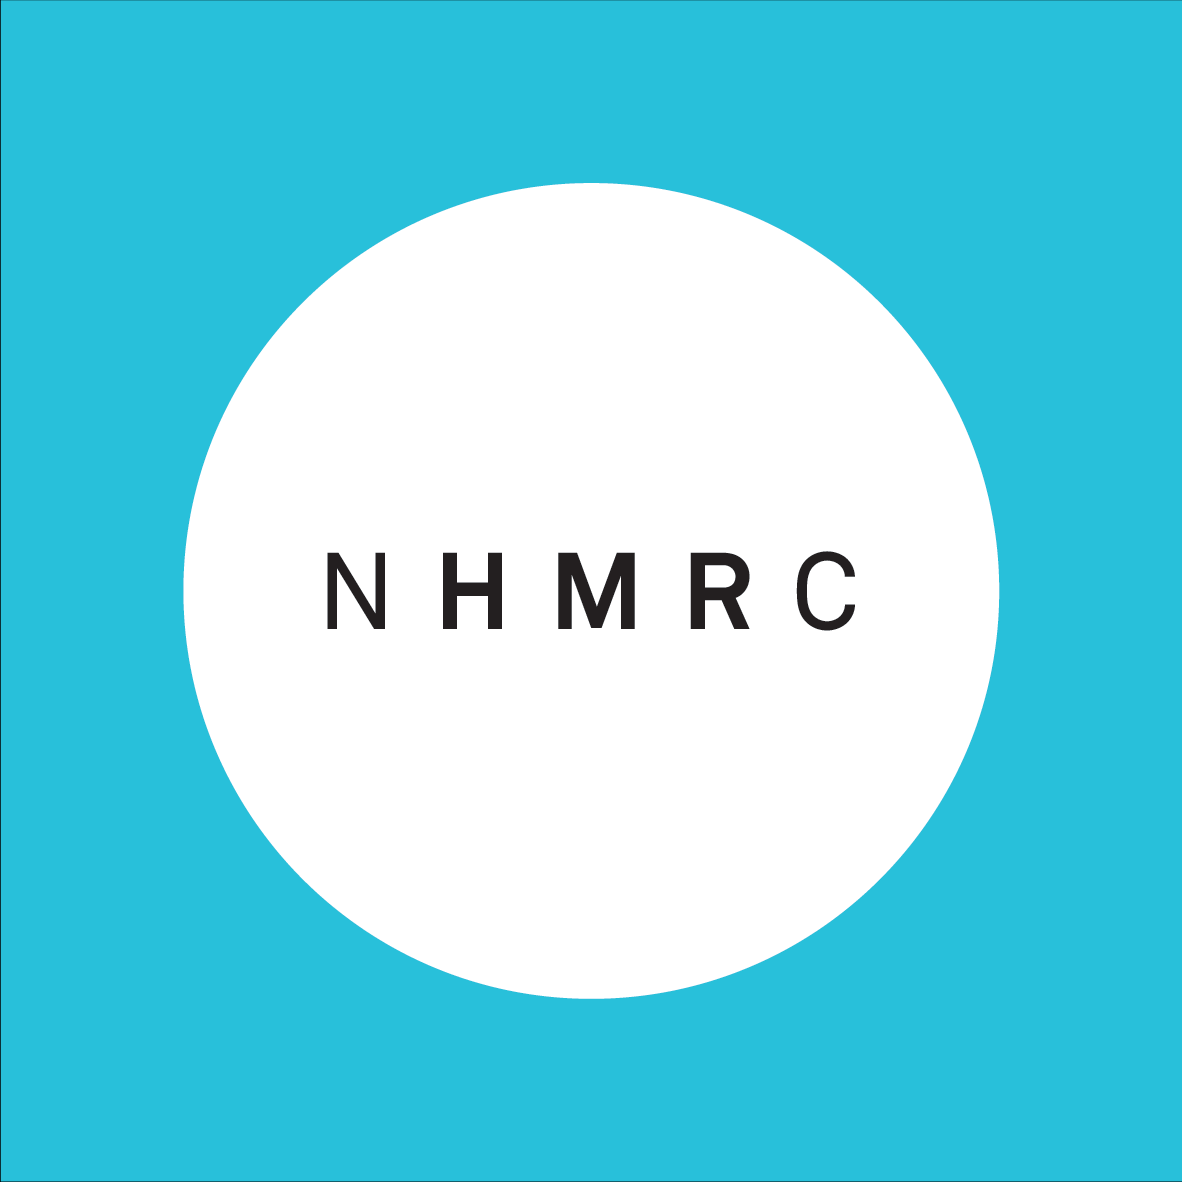 NHMRC Clinical Practice Guidelines Portal logo